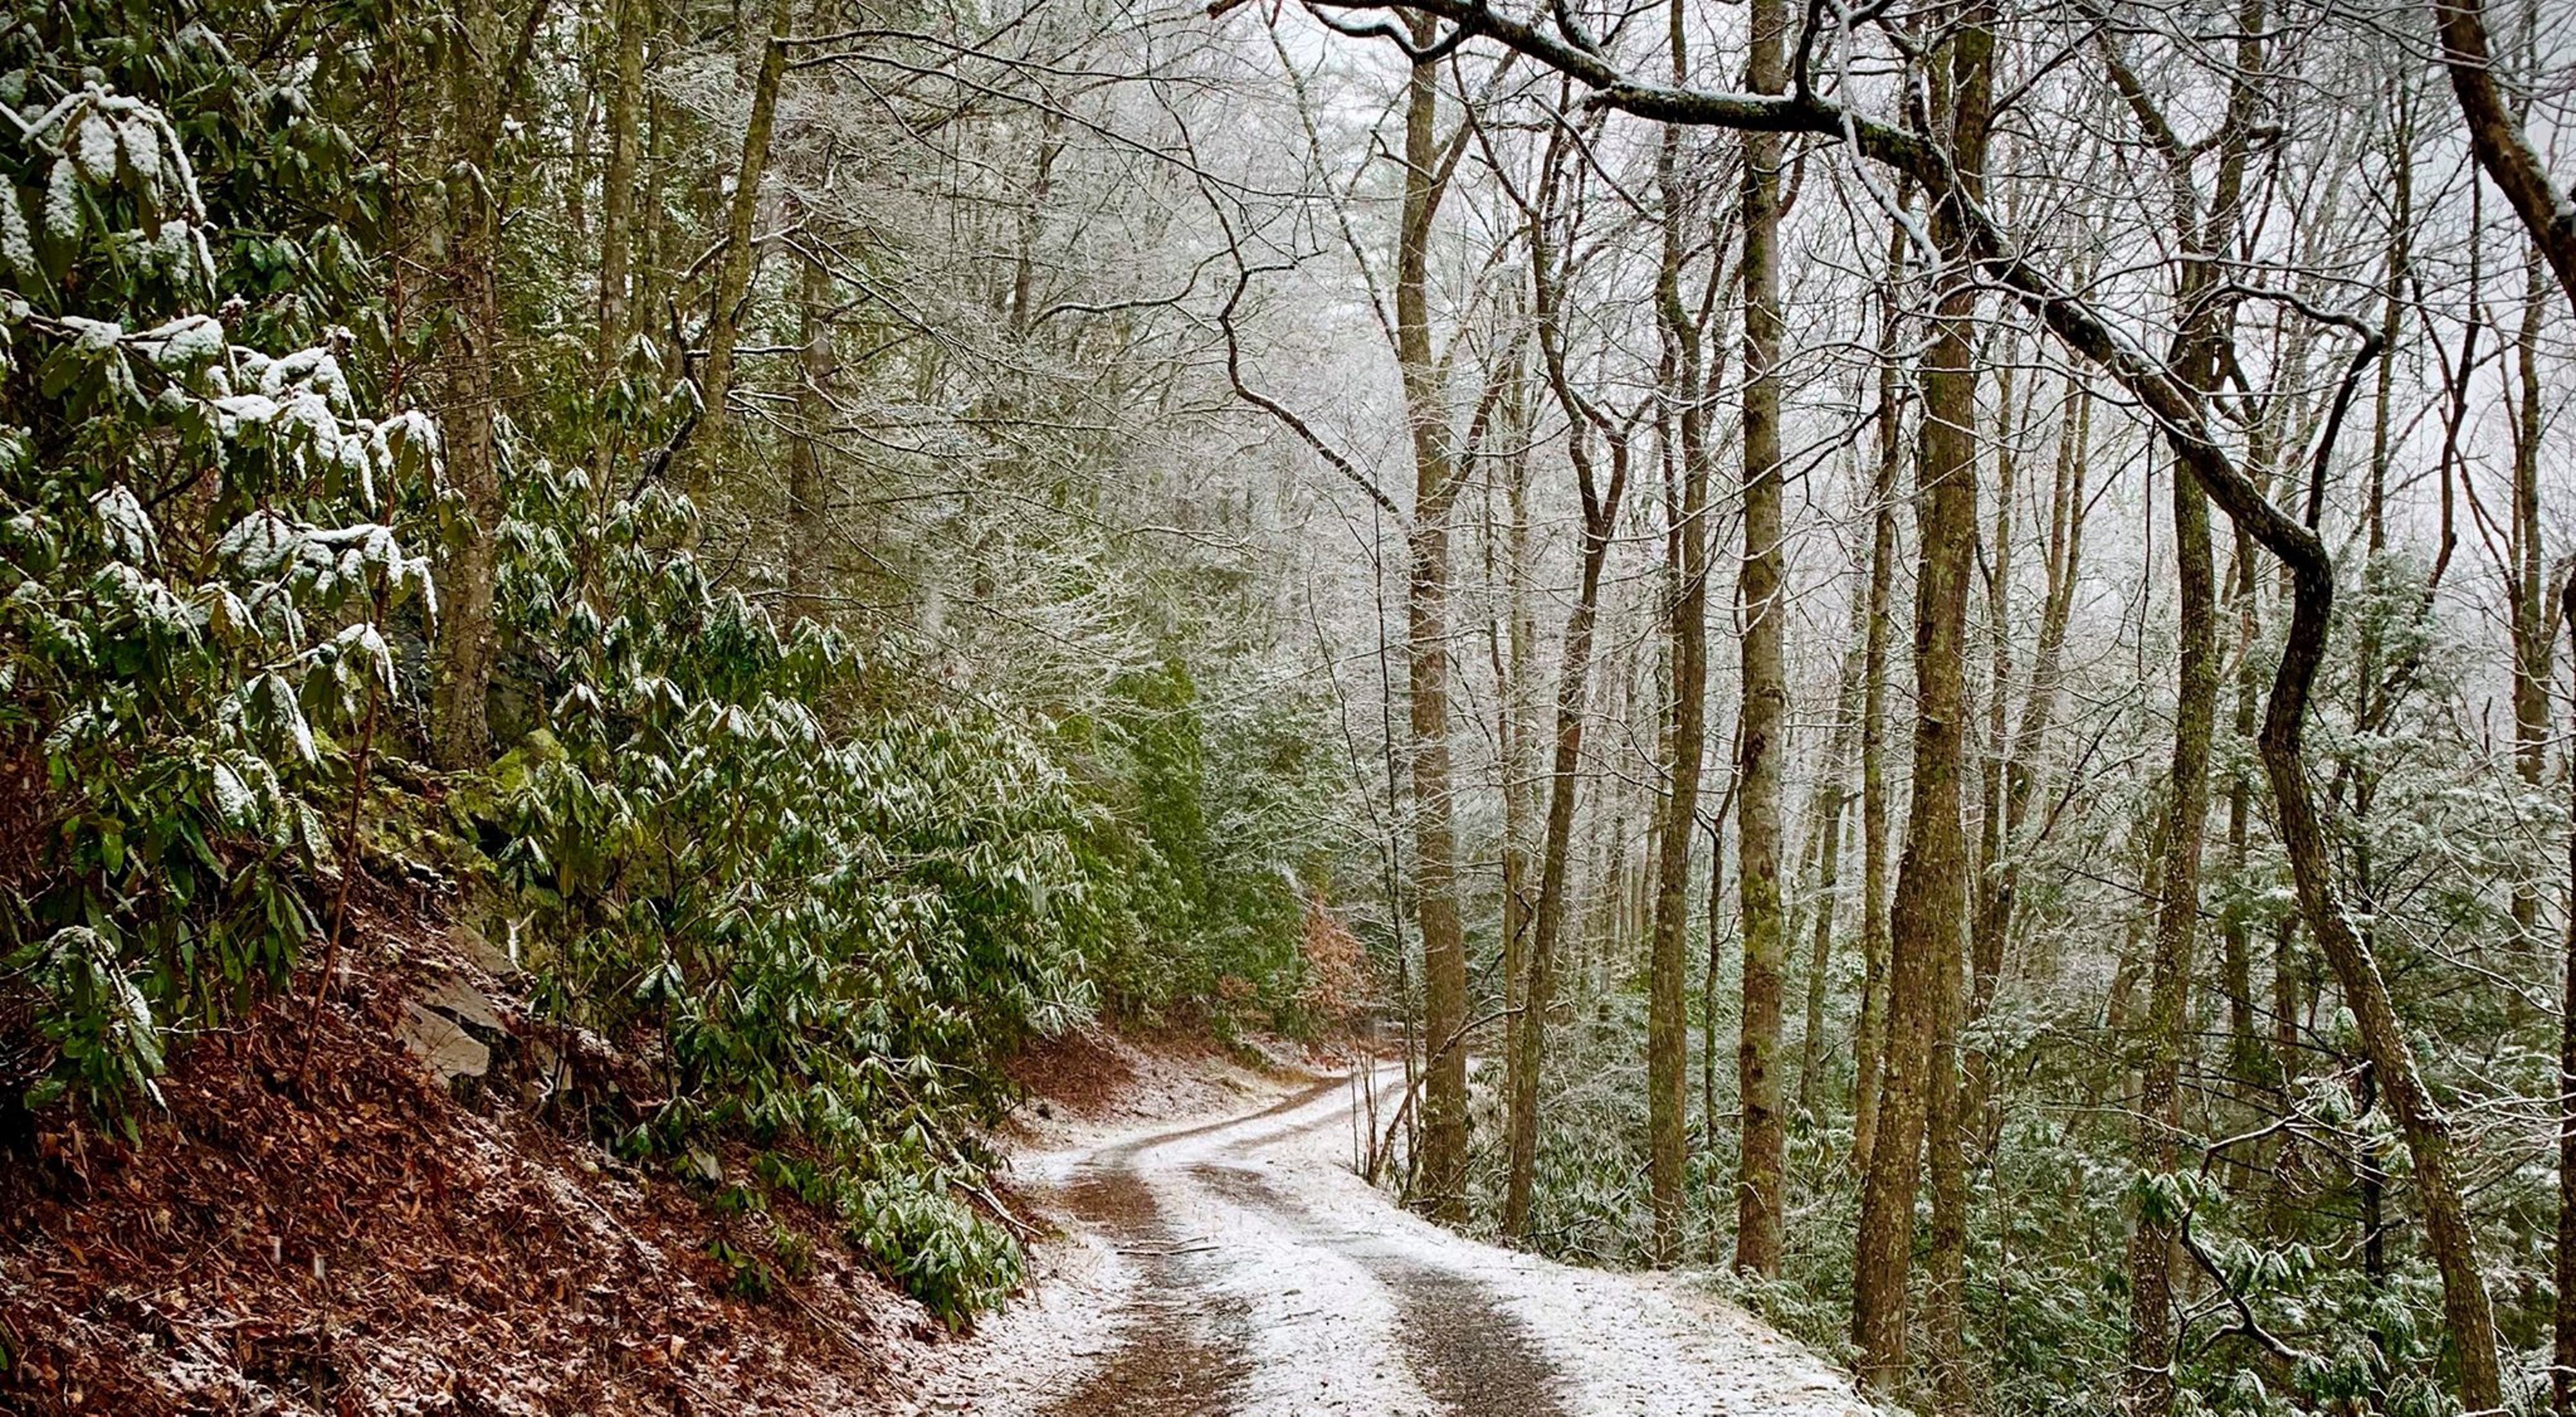 Snow dusts a dirt road surrounded by a forest.